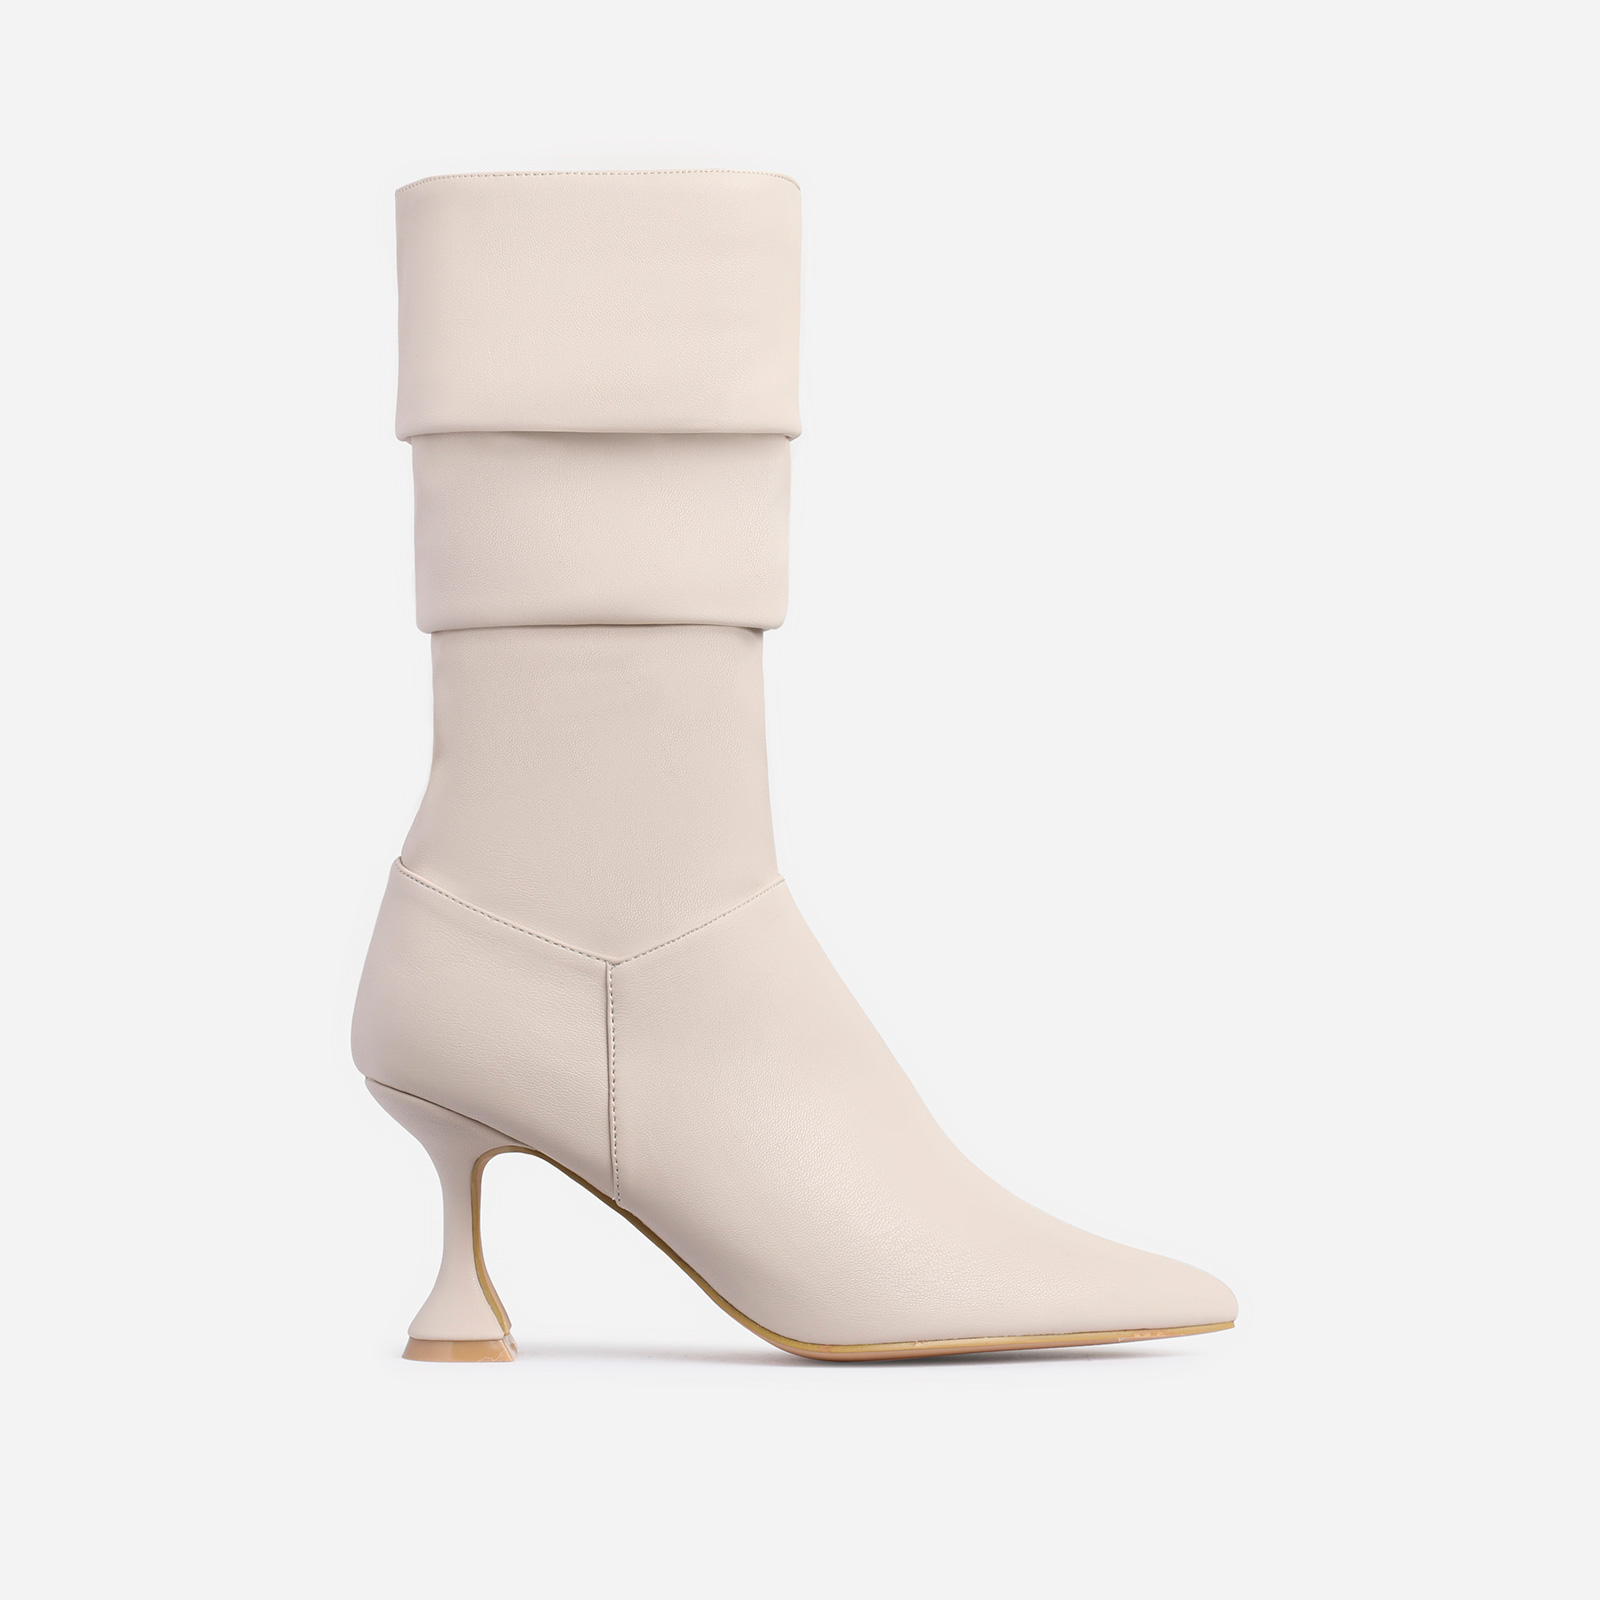 Collab Pyramid Heel Slouched Ankle Boot In Nude Faux Leather